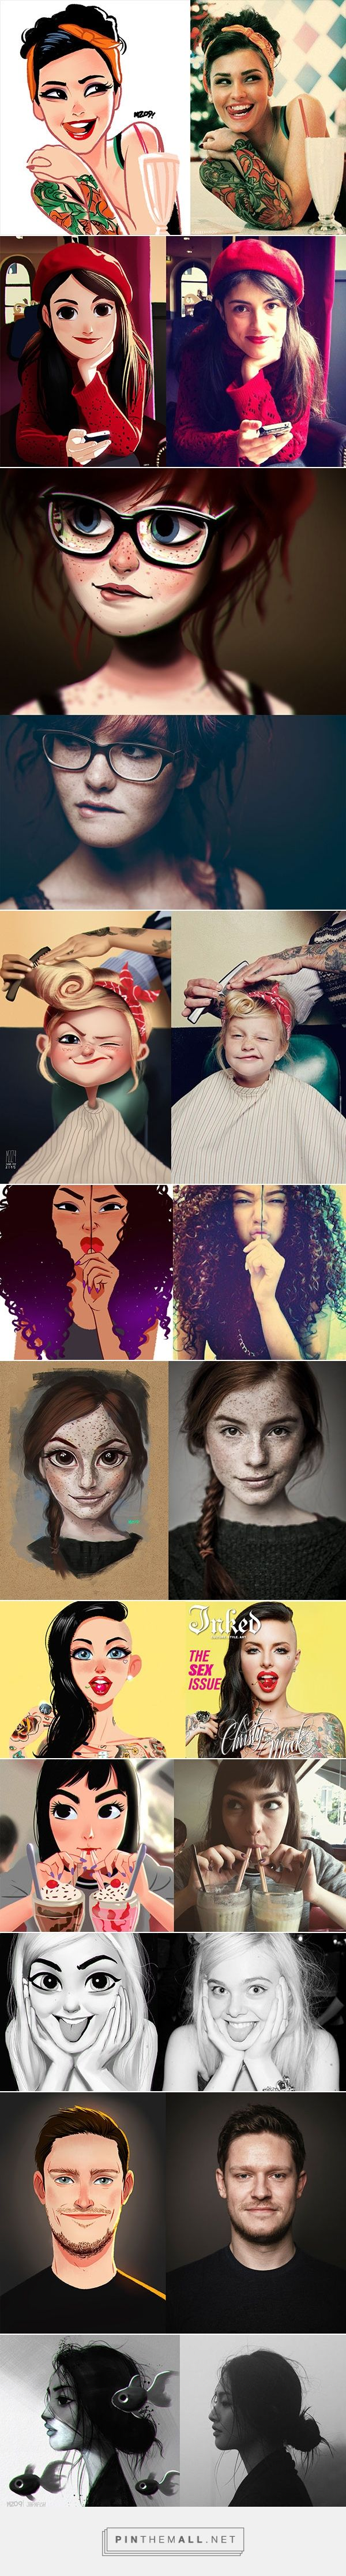 Stunning Digital Art Paintings of Random People – A Fun Series by Julio Cesar - created via http://pinthemall.net                                                                                                                                                                                 Más